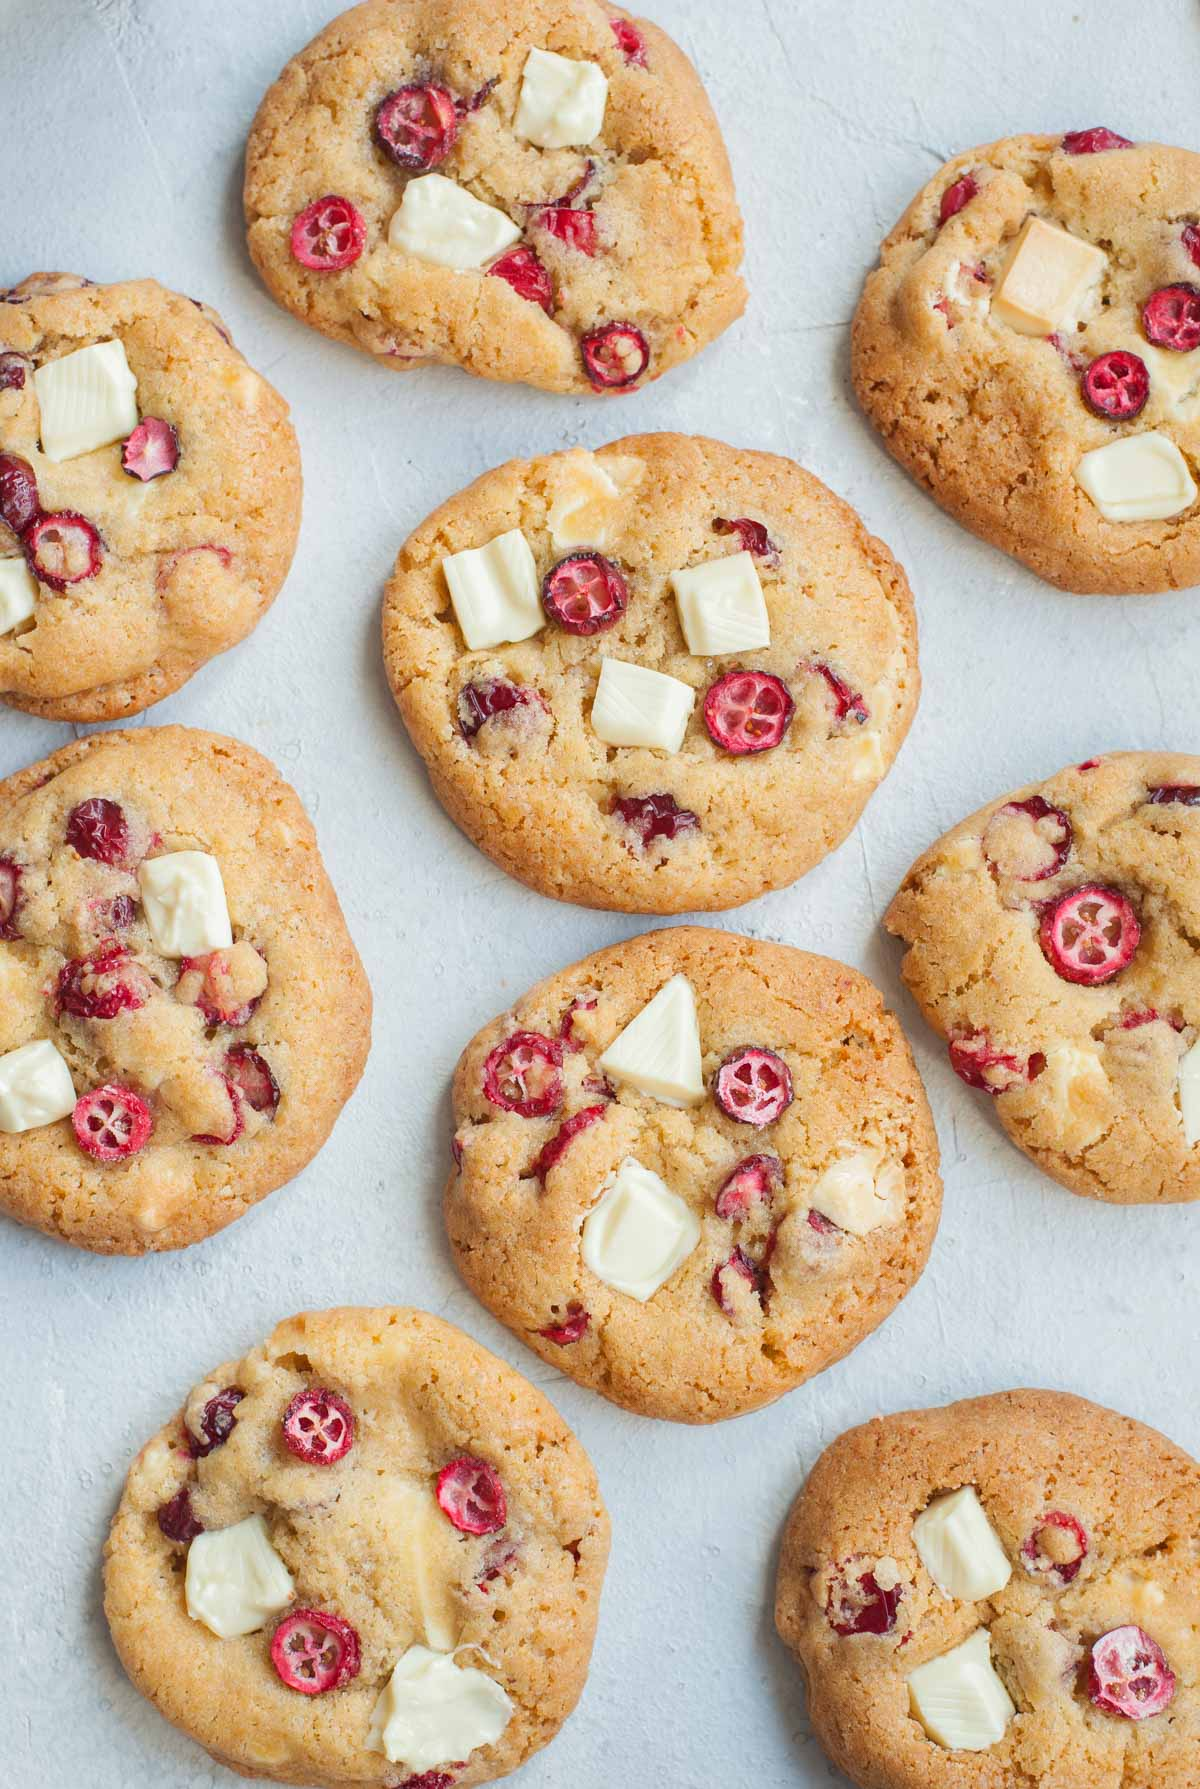 Fresh cranberry white chocolate cookies on a table.